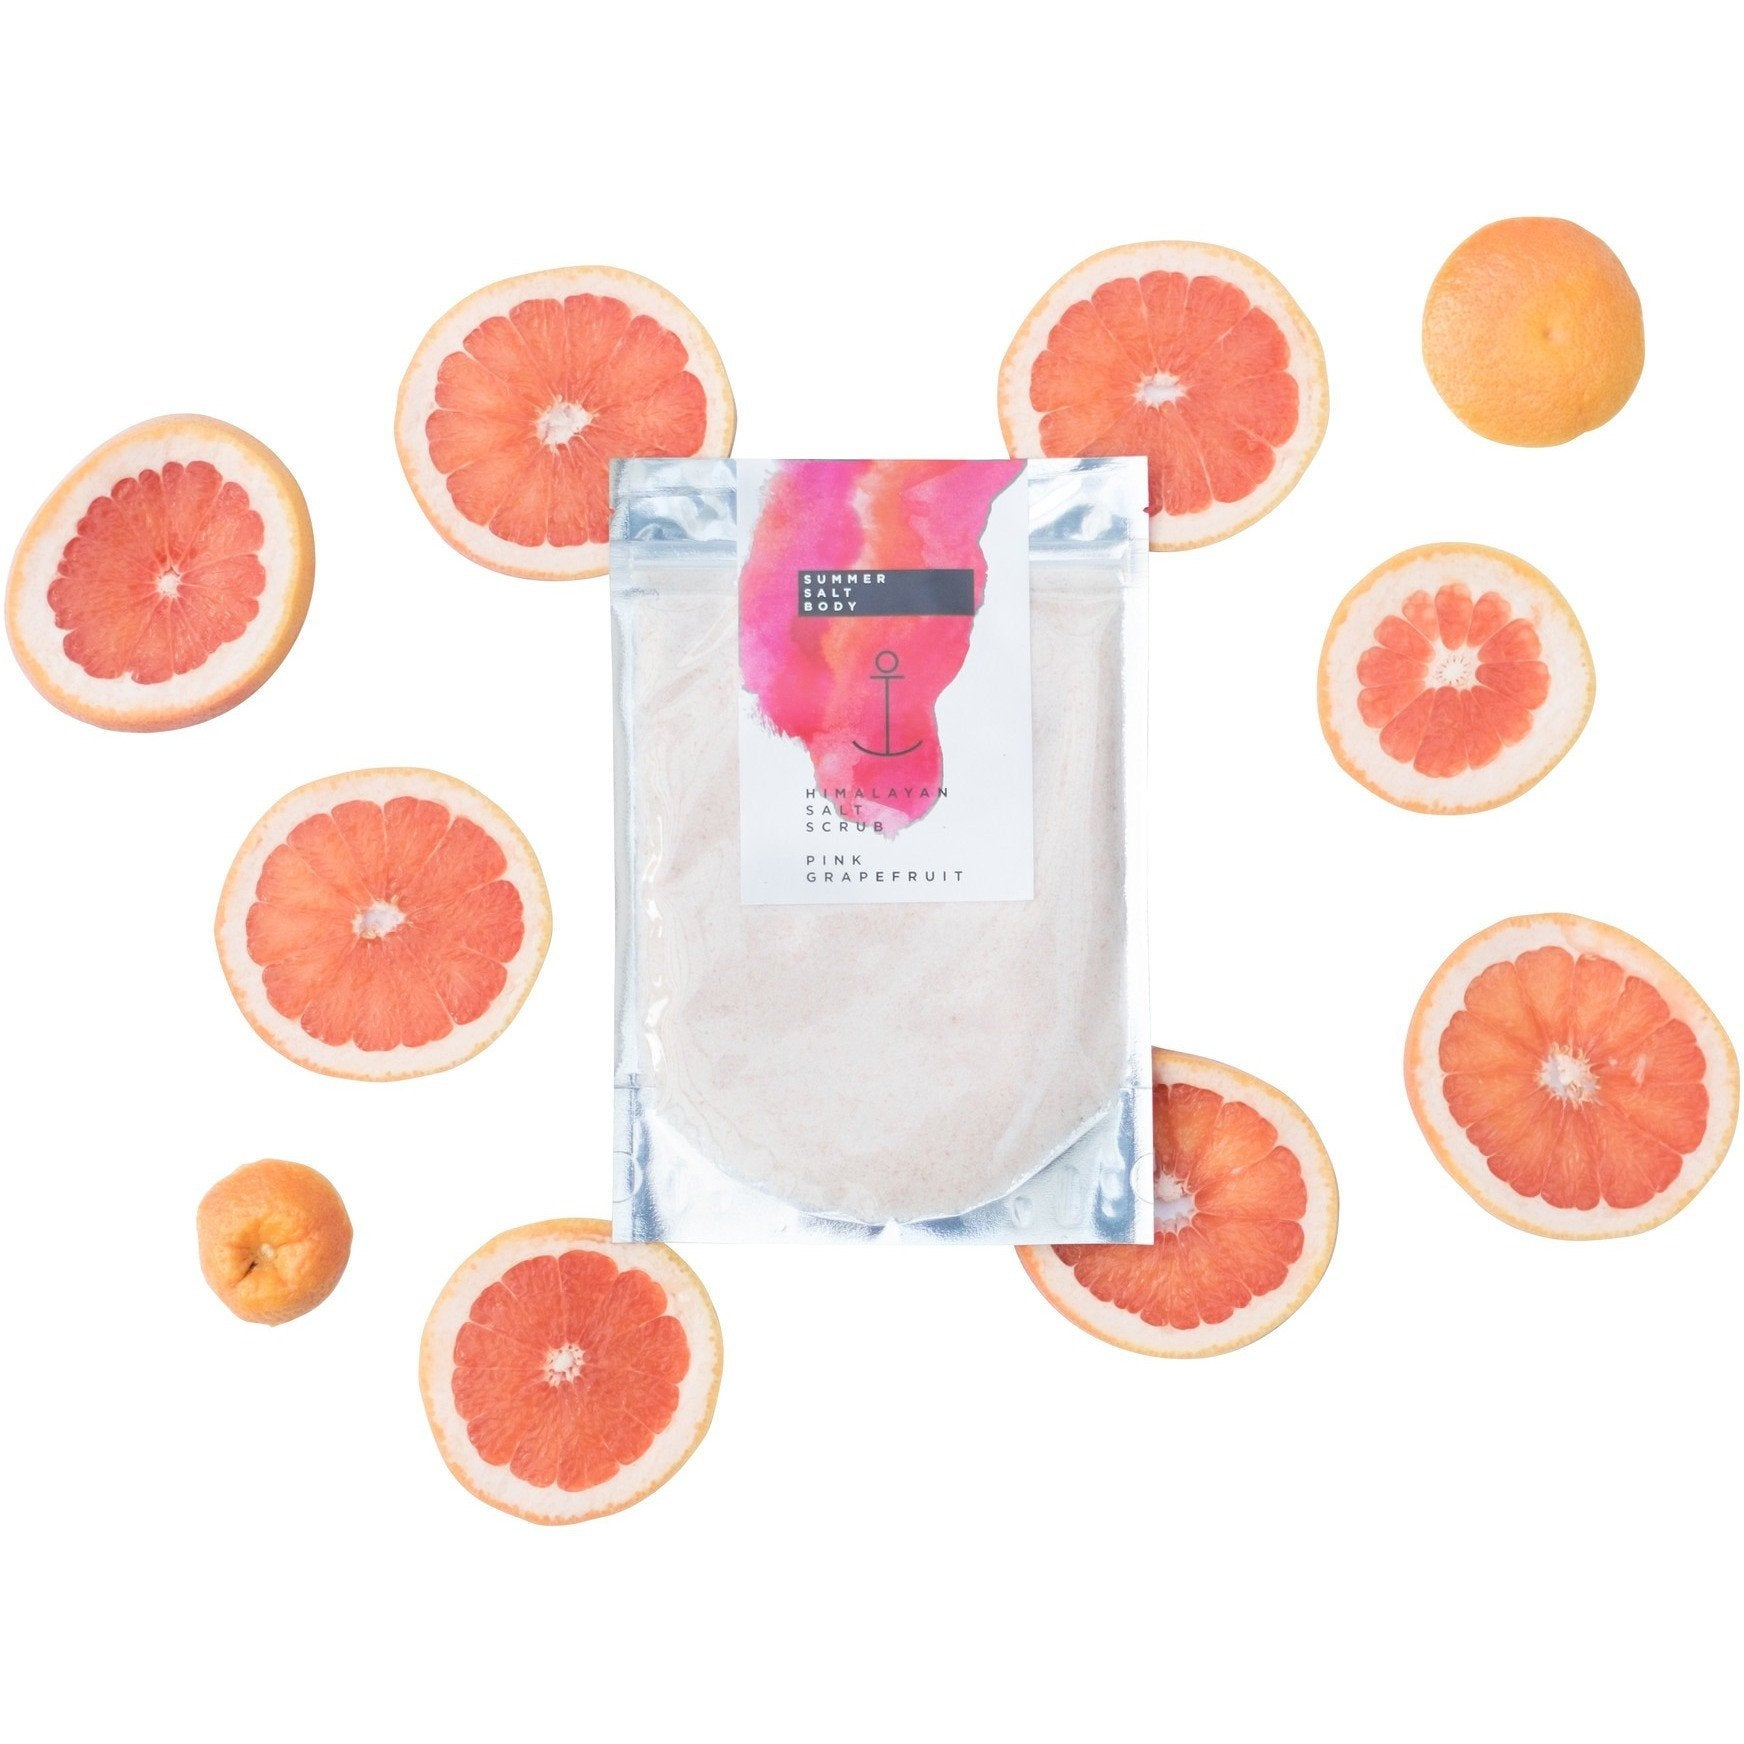 SUMMER SALT BODY-Pink Grapefruit Himalayan Salt Scrub 240g